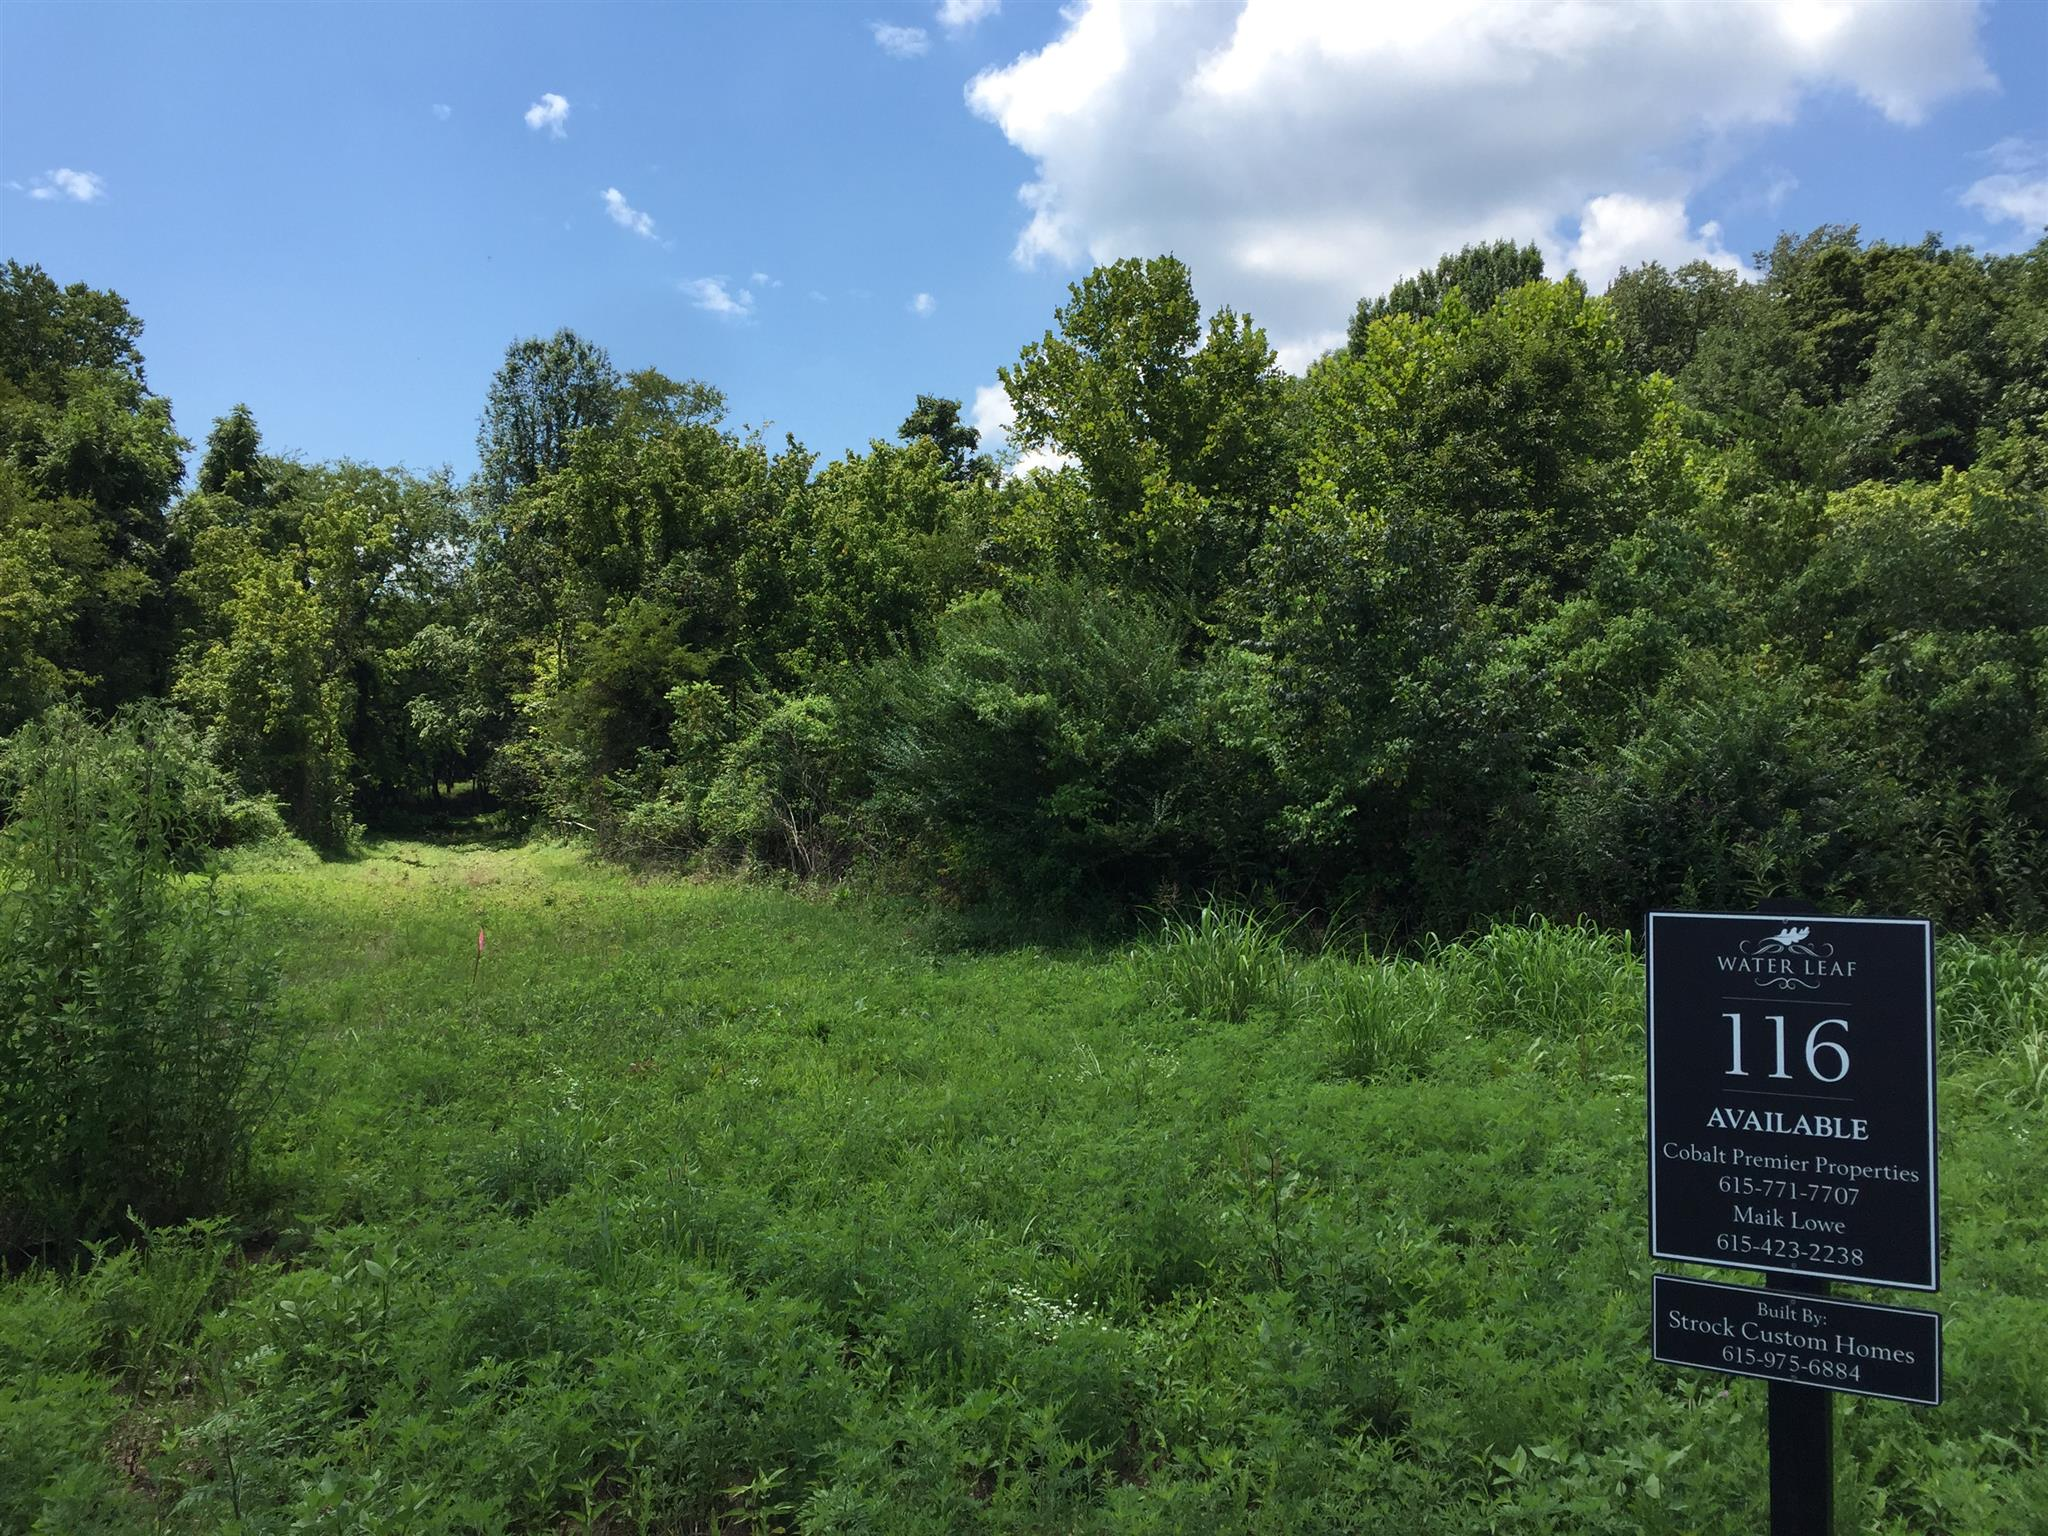 Beautiful partially treed  lot with deep and wide building envelope (pool?).  Water Leaf off Gosey HIll Road will have 24 homes. 5 br perc site,  Builder is Strock Custom Homes.  Build your dream home.